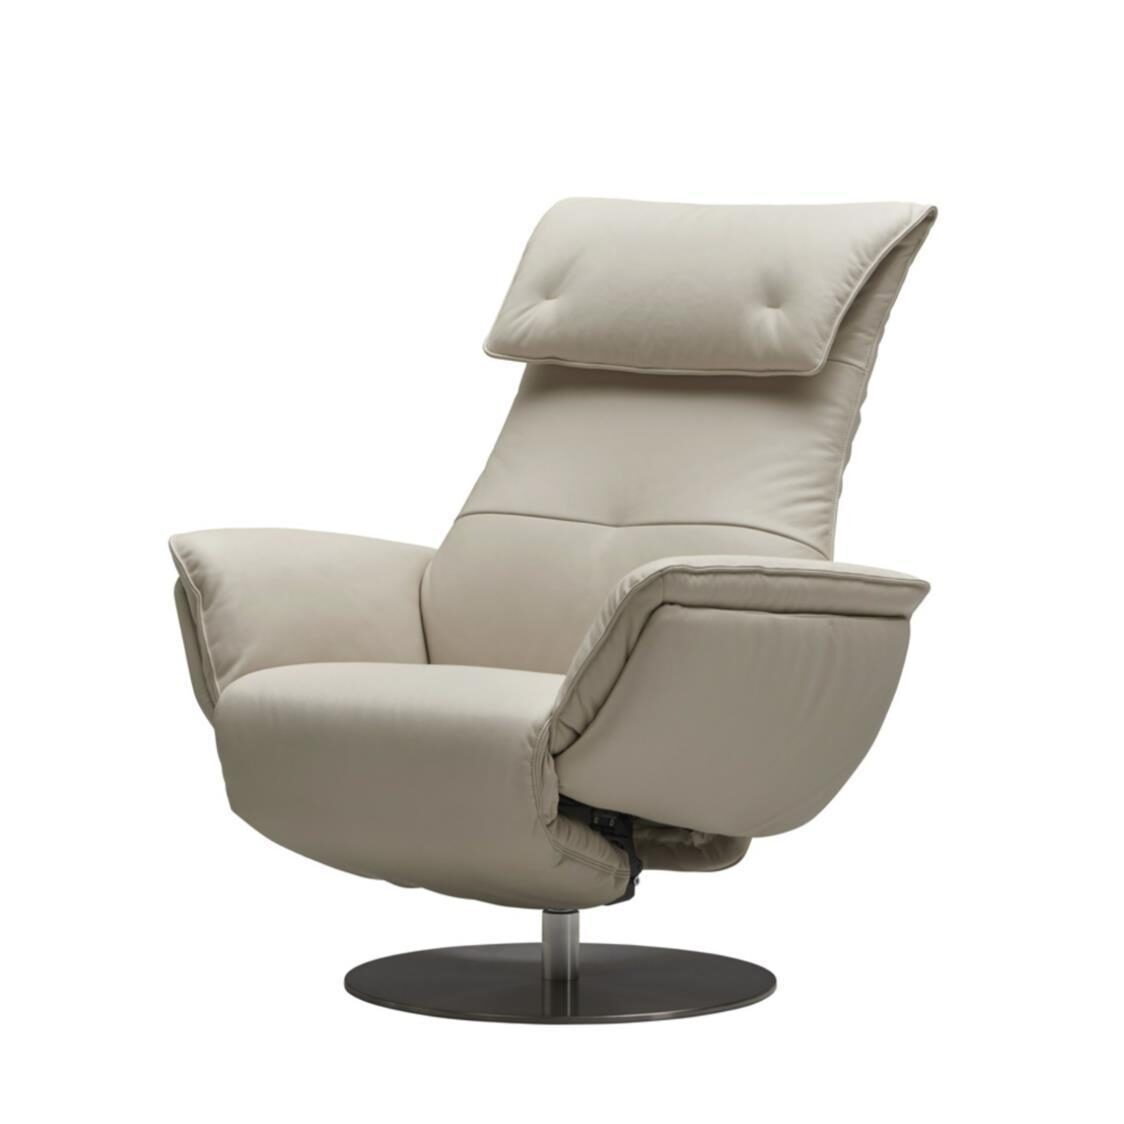 Wolke Chair - Full Leather L660 Powder